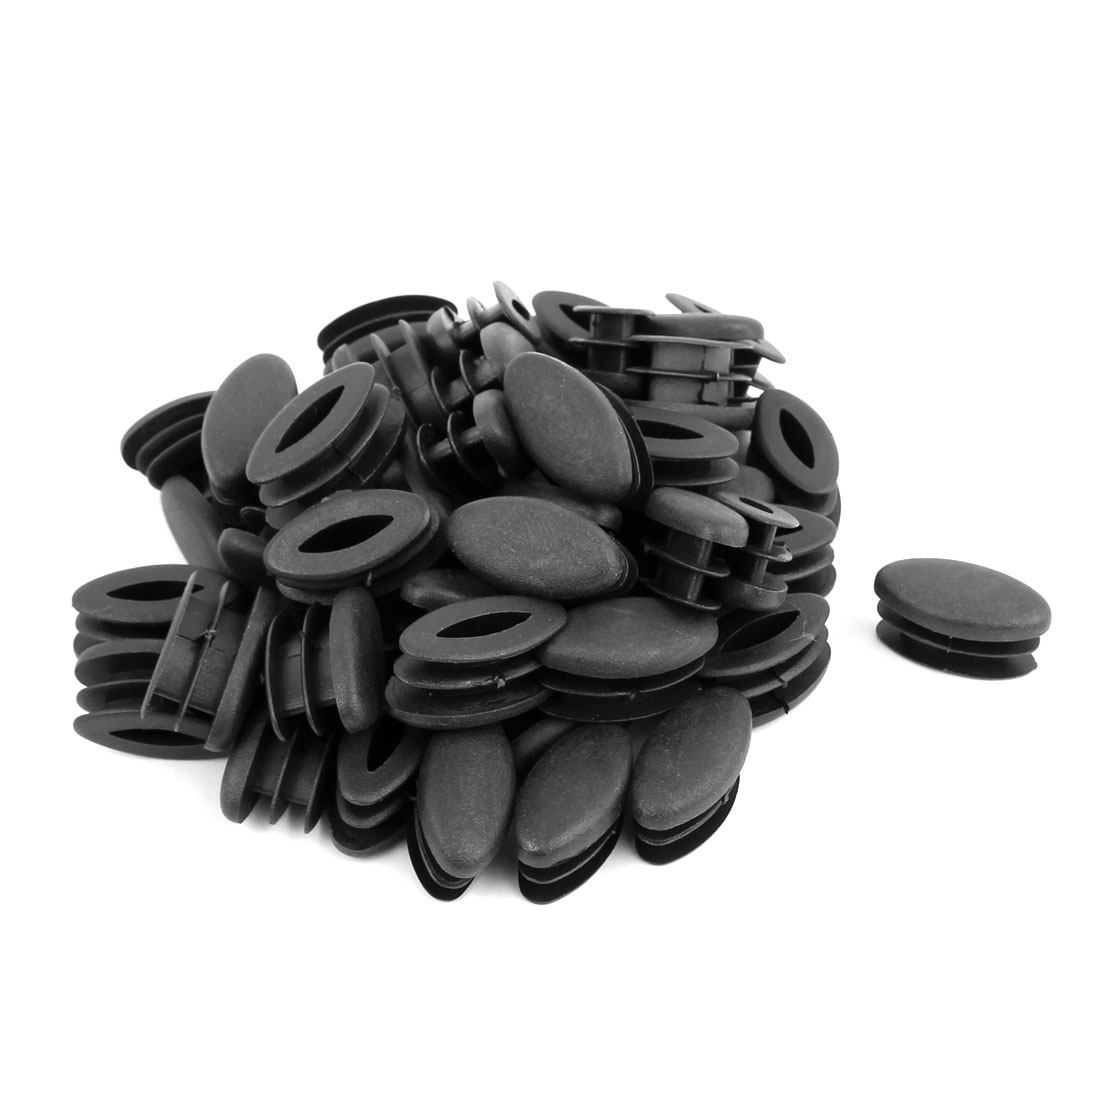 Home Office Plastic Oval Shaped Table Chair Leg Feet Tube Inserts Black 50pcs